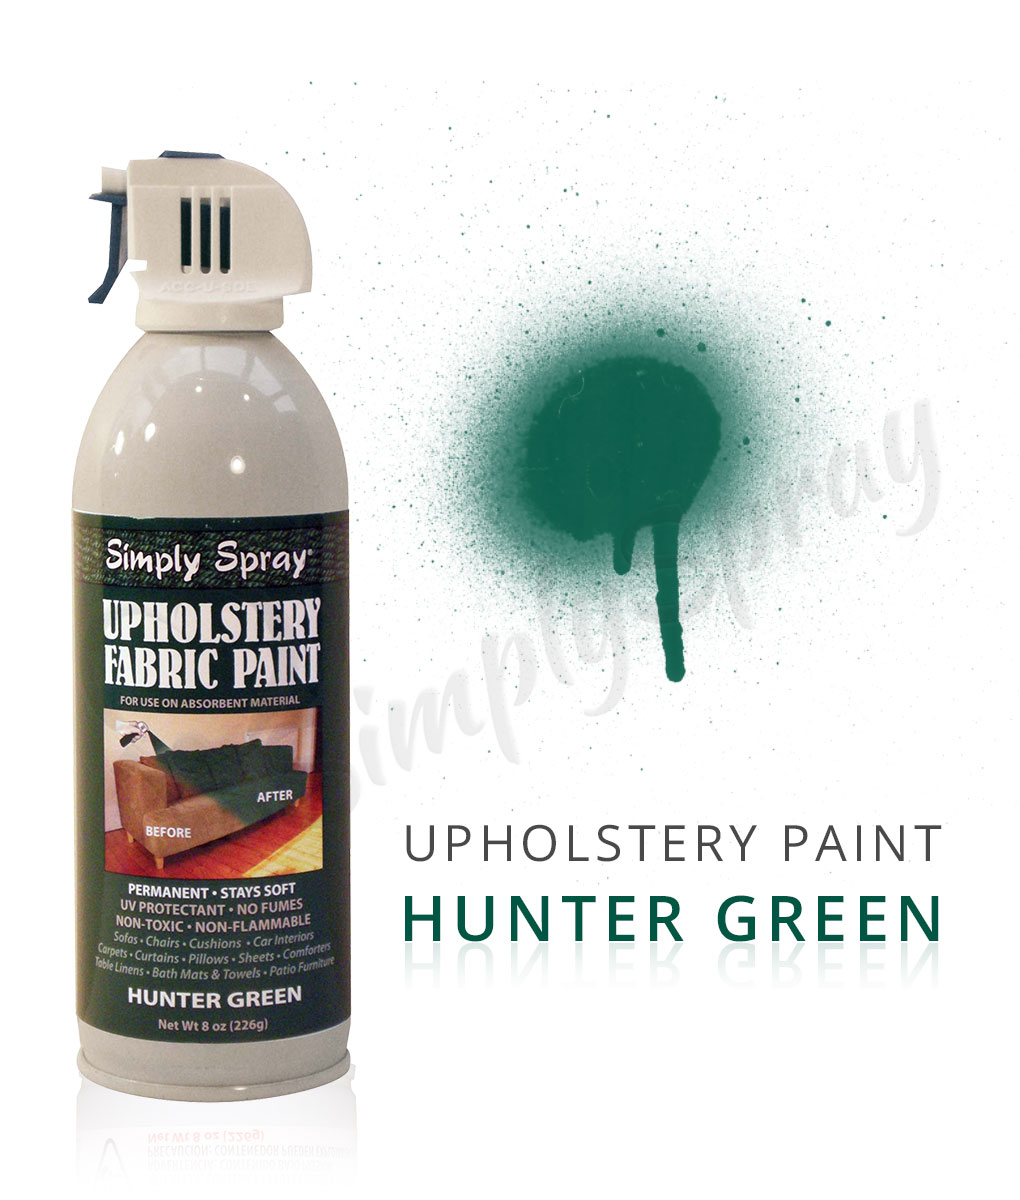 hunter green fabric dye spray paint quick easy effective. Black Bedroom Furniture Sets. Home Design Ideas